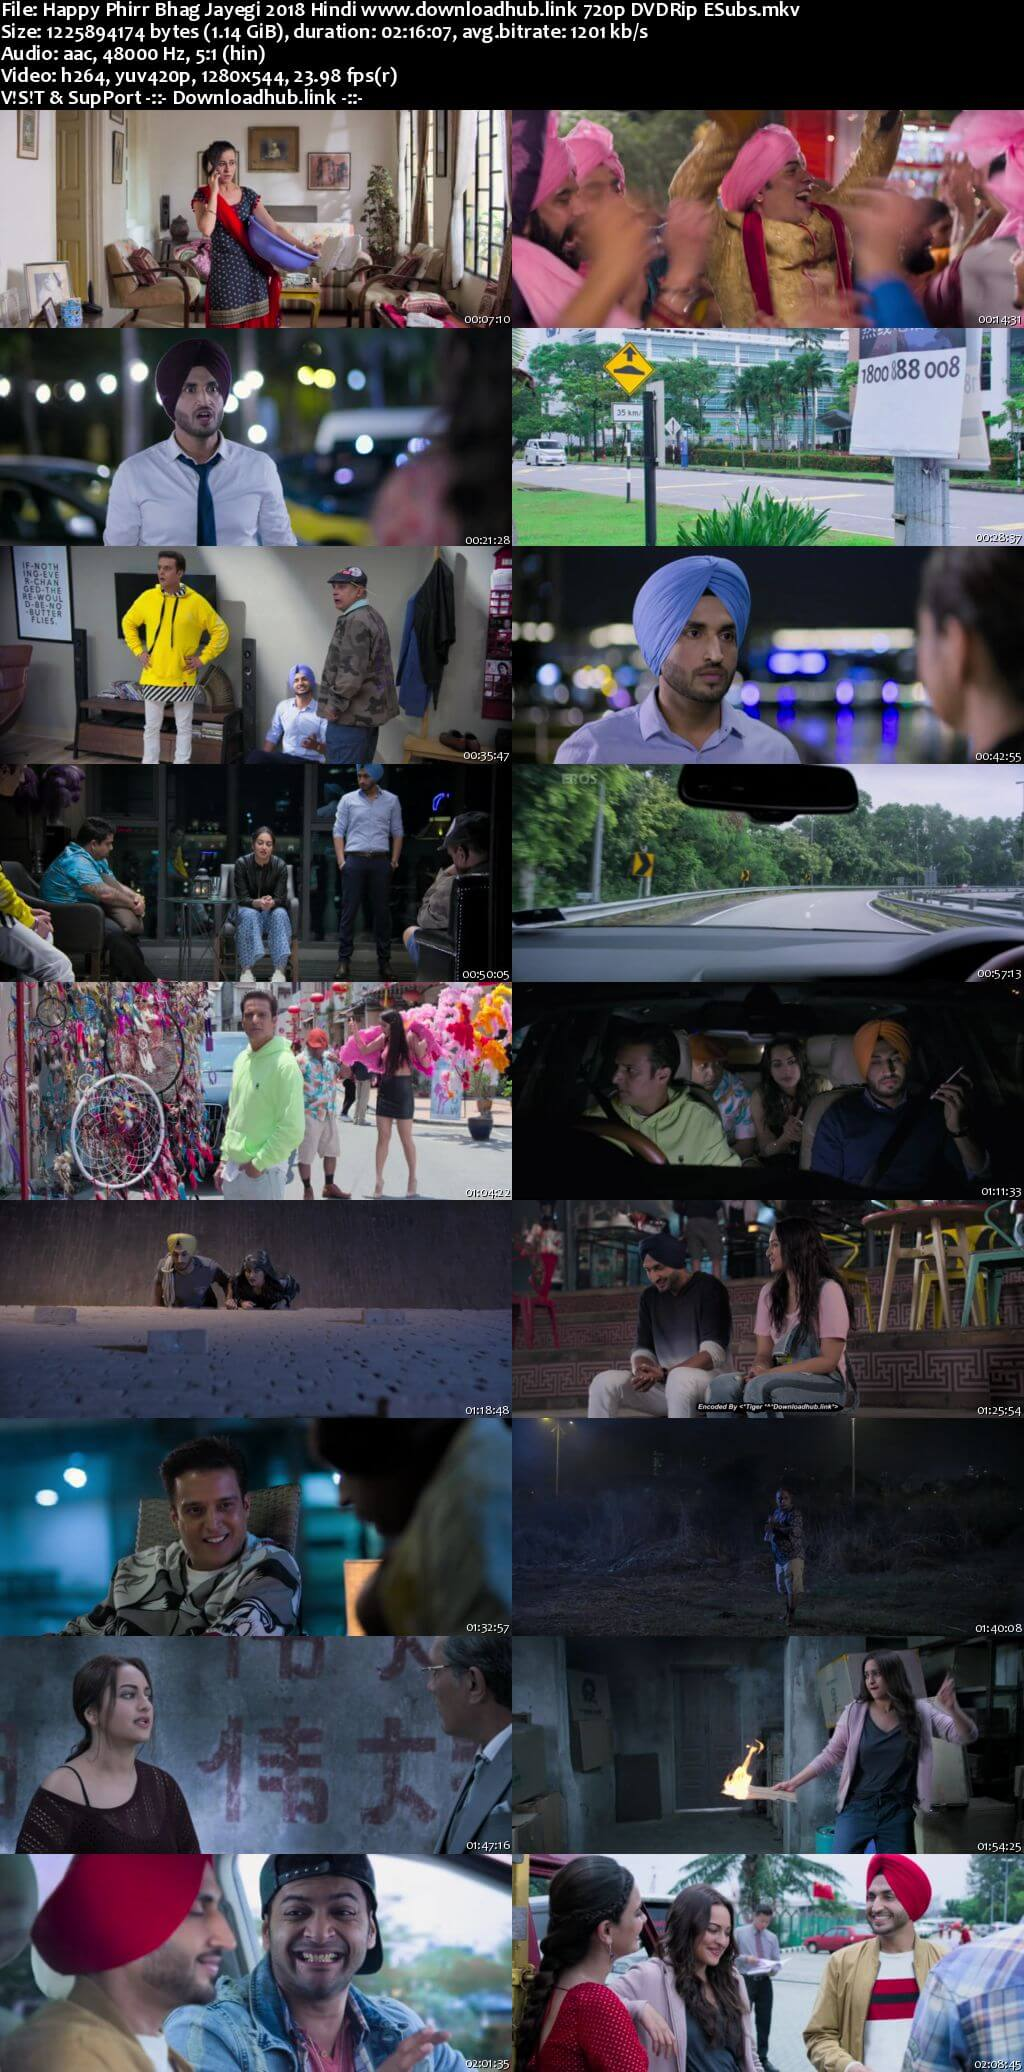 Happy Phirr Bhag Jayegi 2018 Hindi 720p DVDRip ESubs